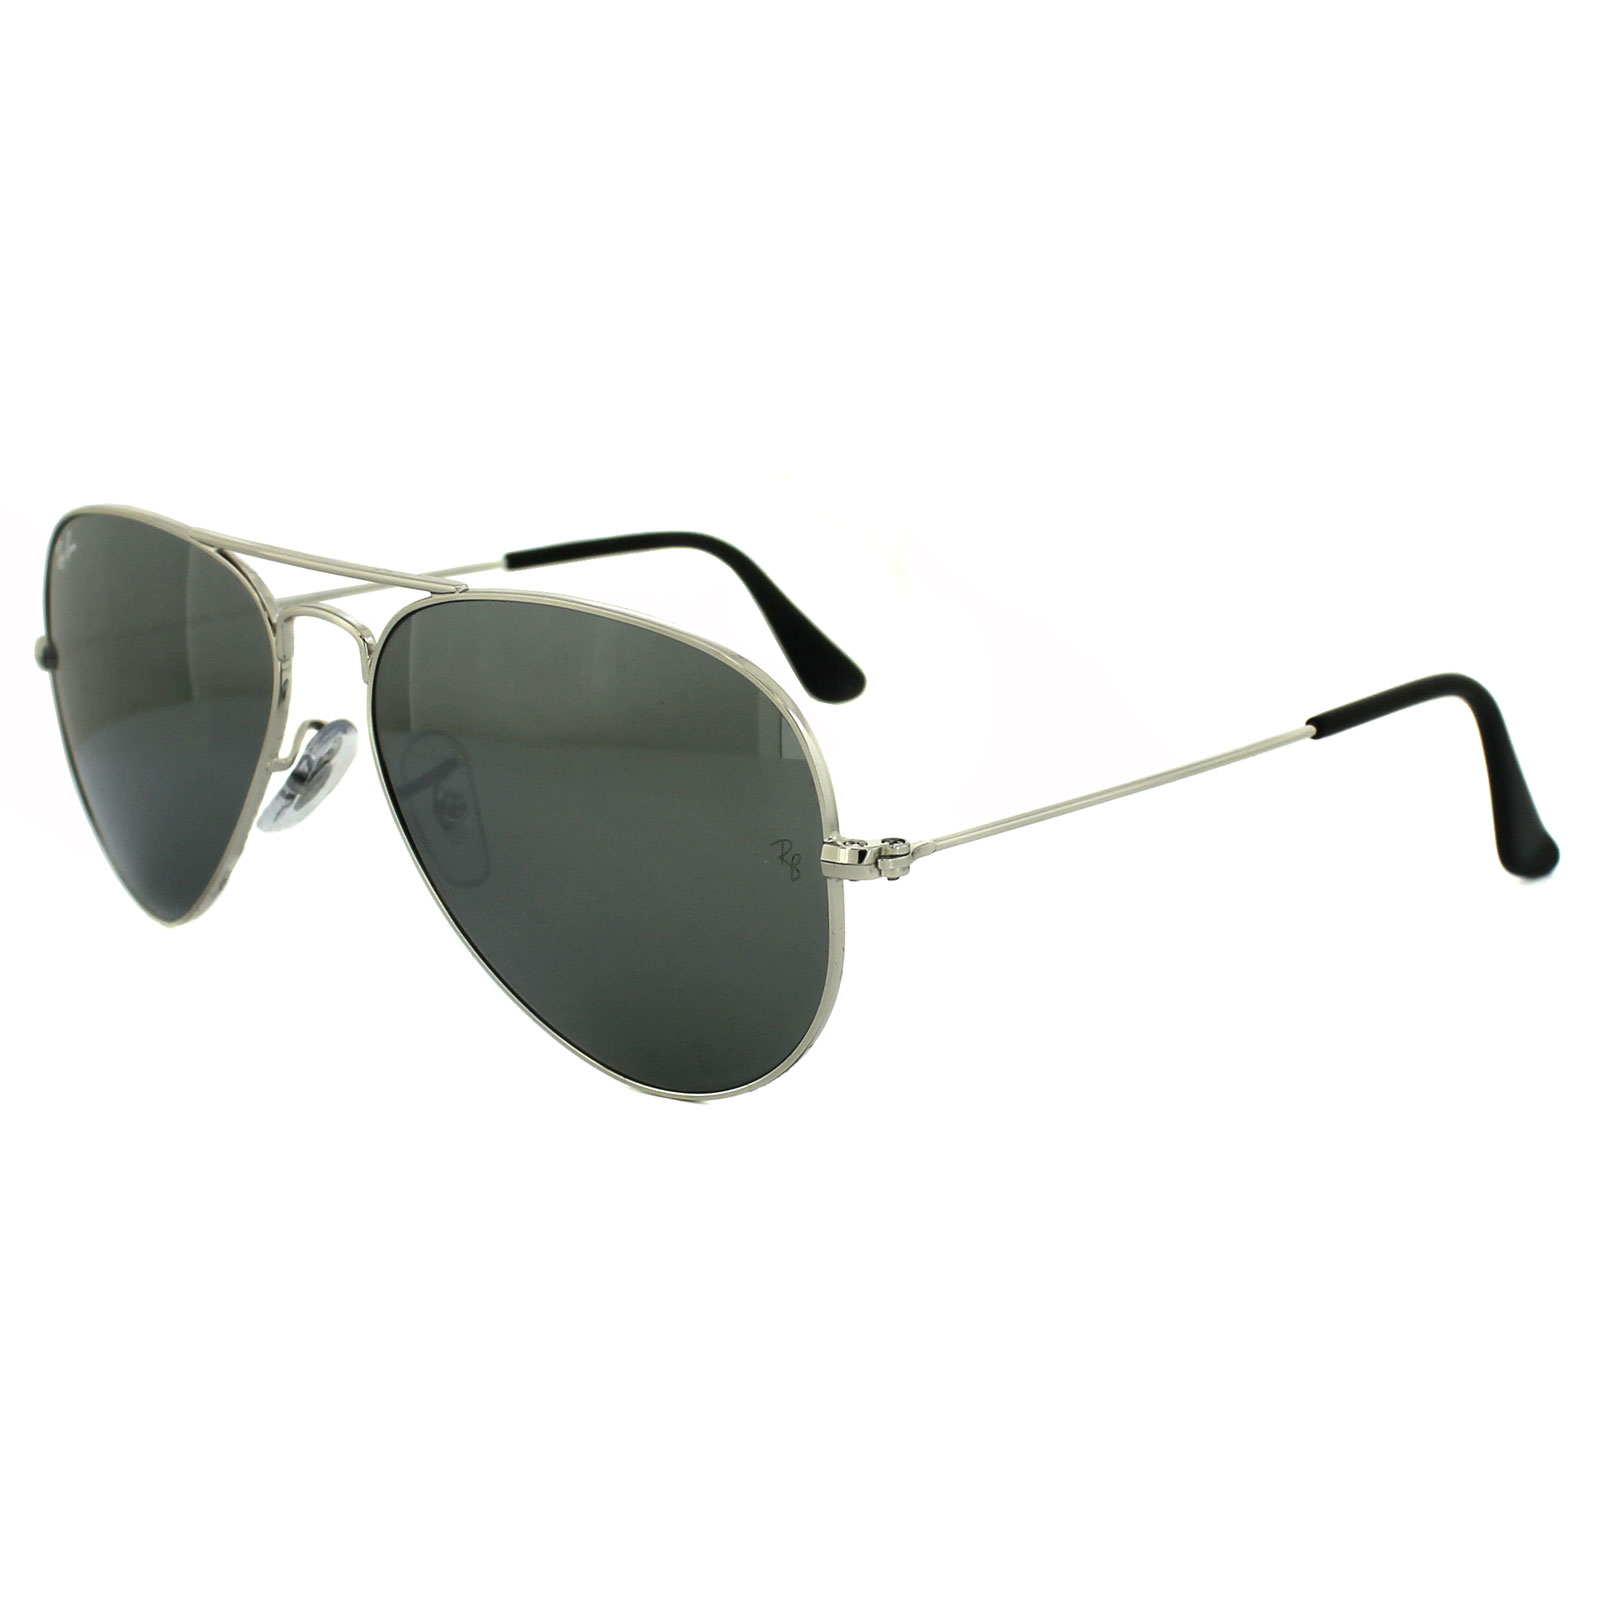 cbfe14fbf Cheap Ray-Ban Aviator 3025 Sunglasses - Discounted Sunglasses